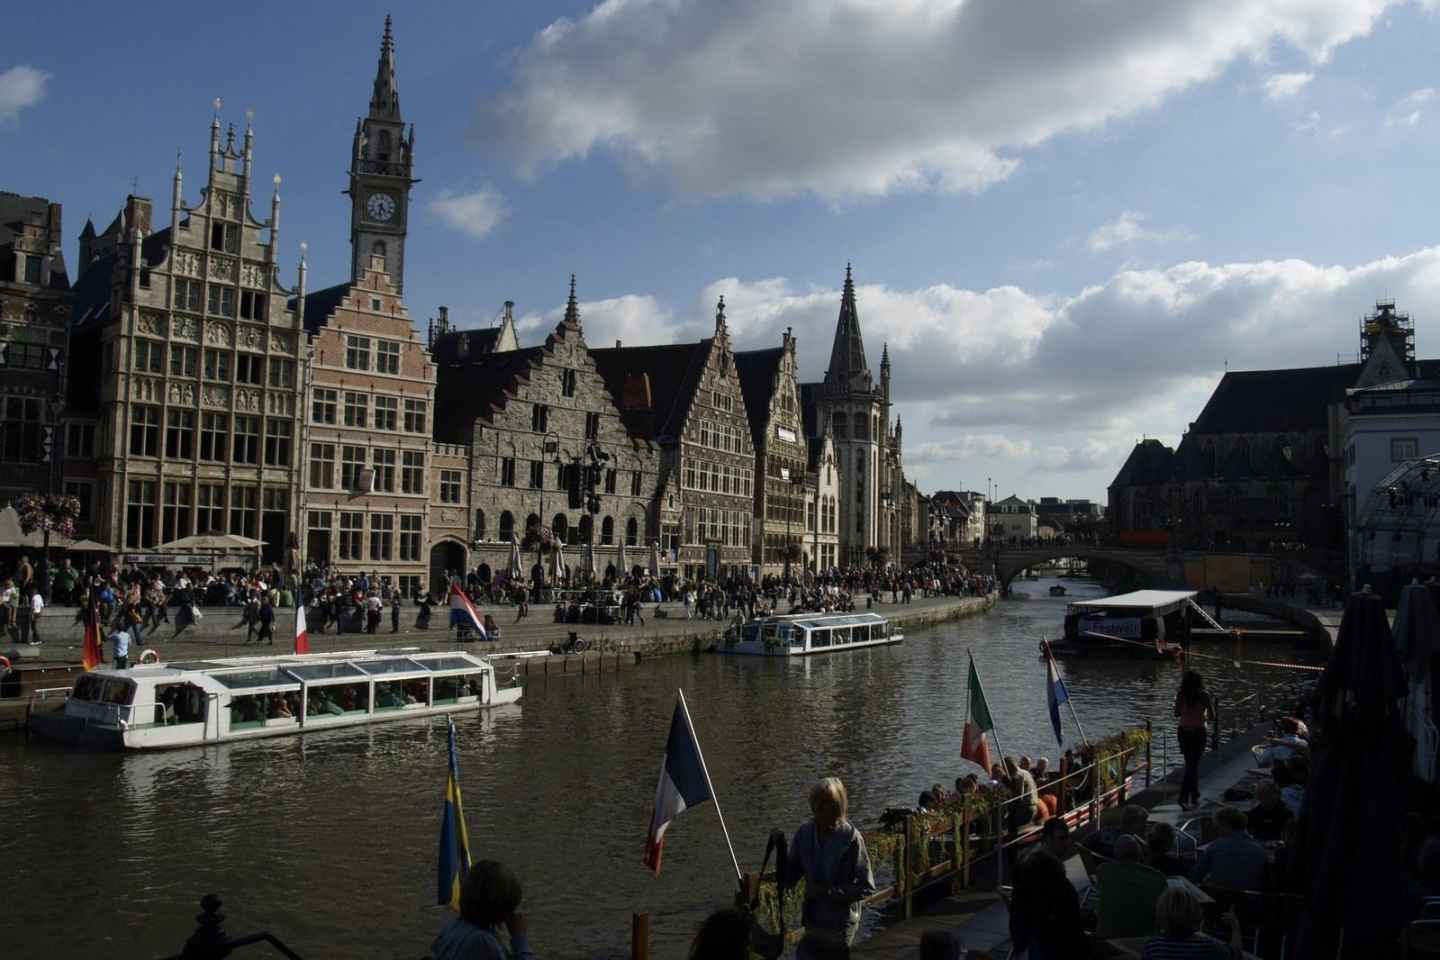 Ghent: Walking Tour from Friday Market to the Cathedral